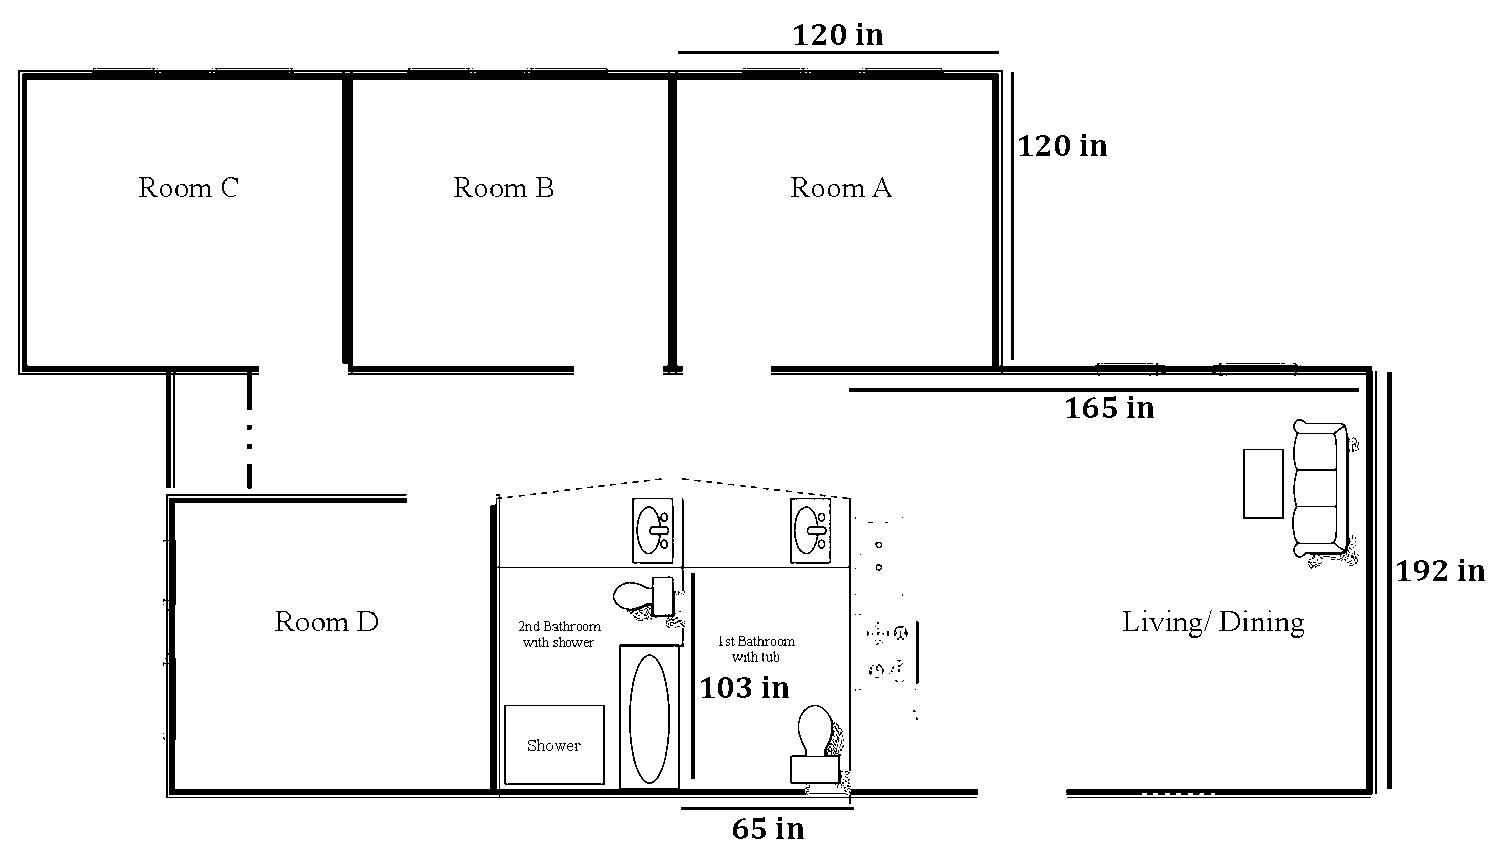 Madrone apartment layout with dimensions